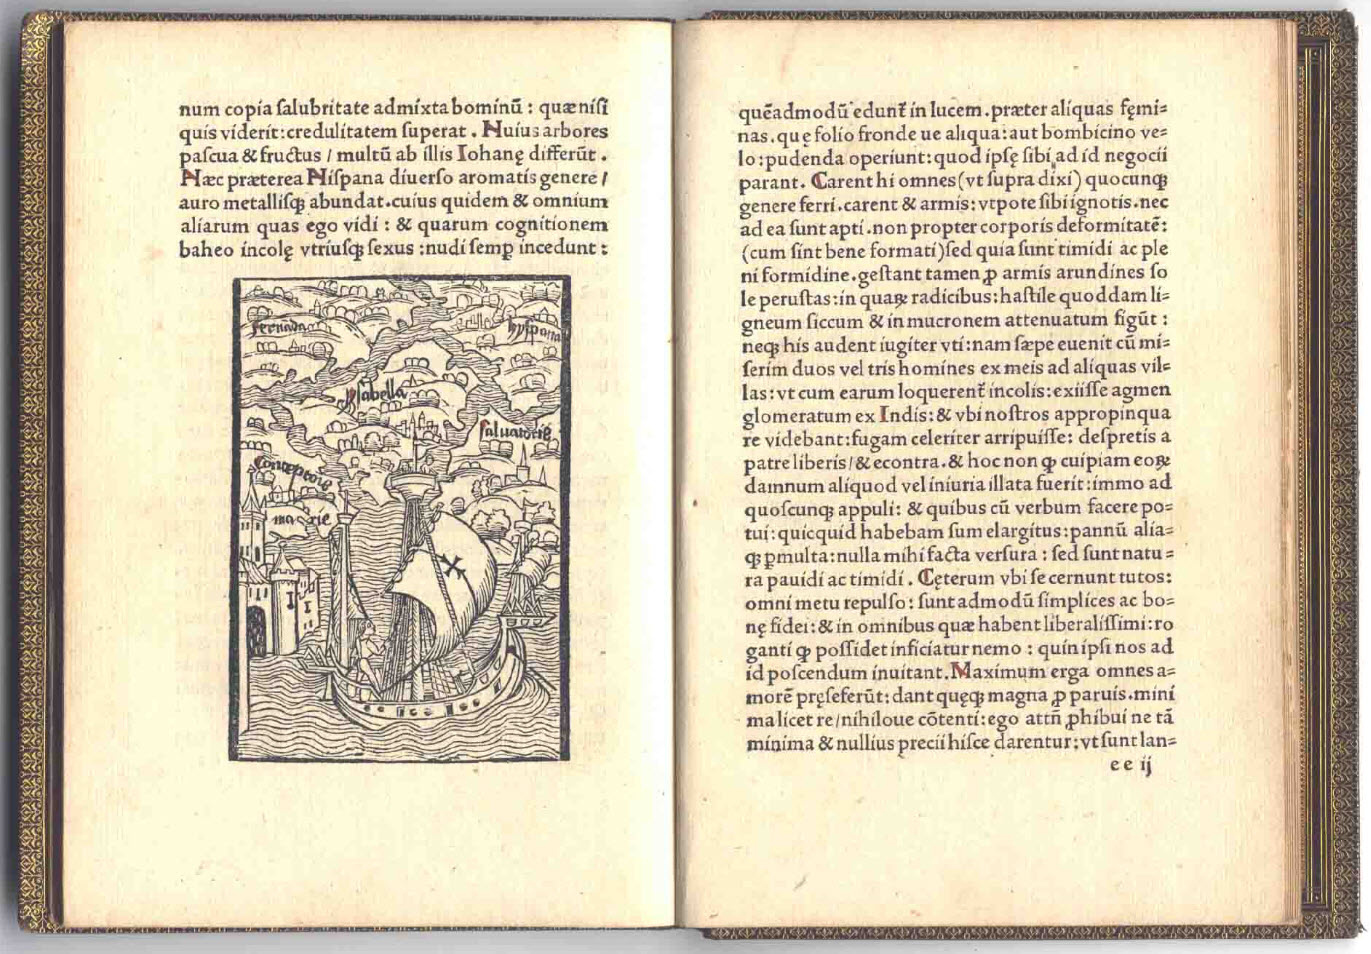 The left page depicts the six islands of the Indies in a woodcut from the 1494 Basel edition of Columbus's letter